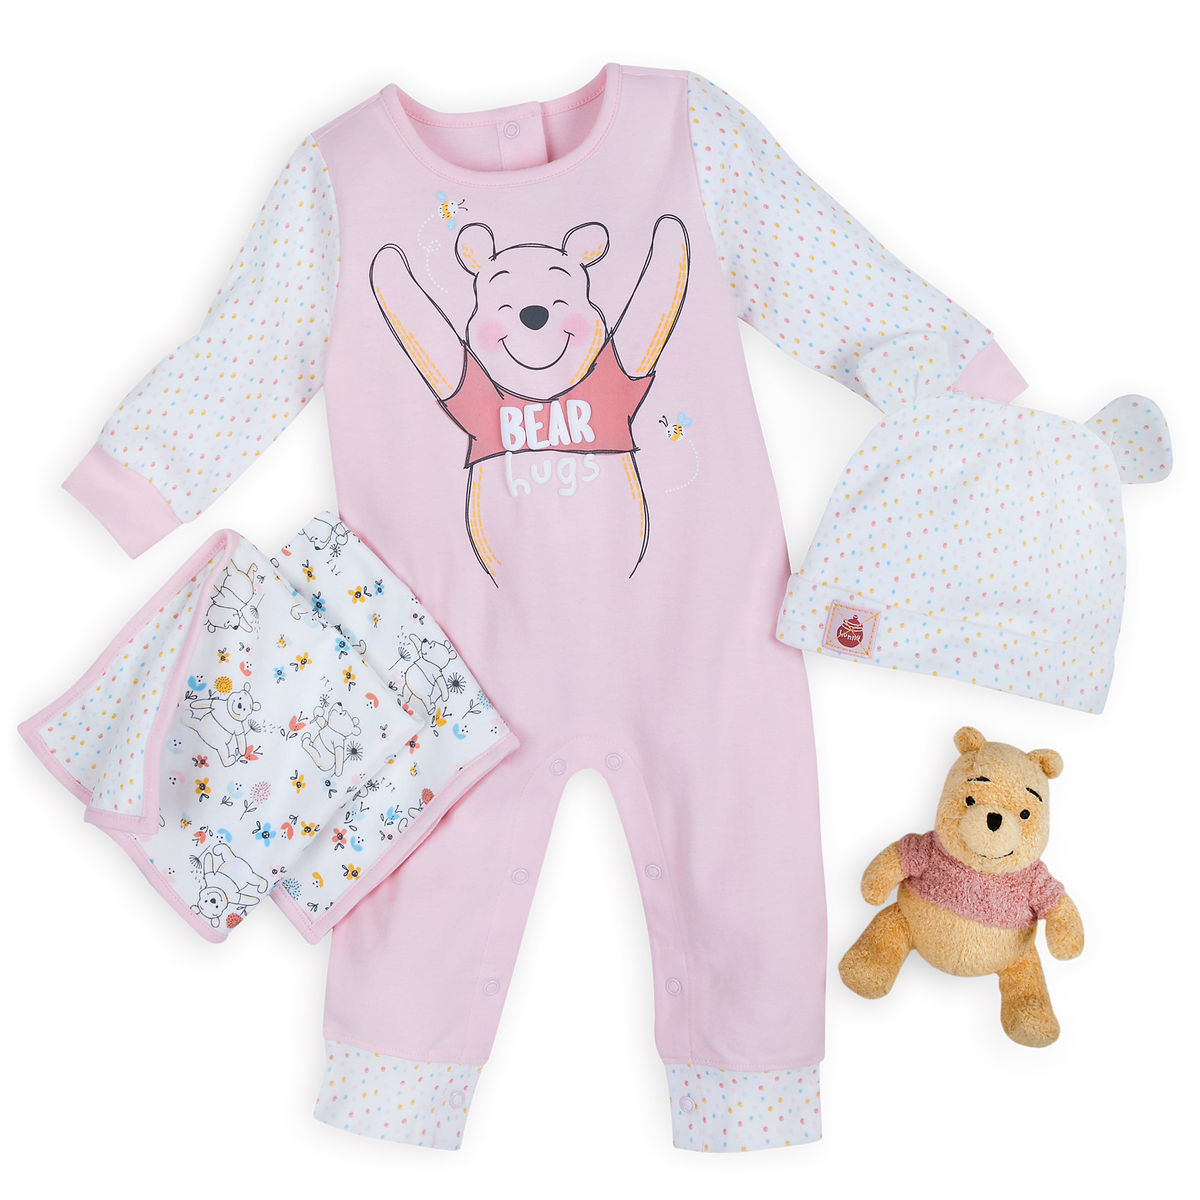 e9f1f34e3 Winnie the Pooh Gift Set for Baby - Pink